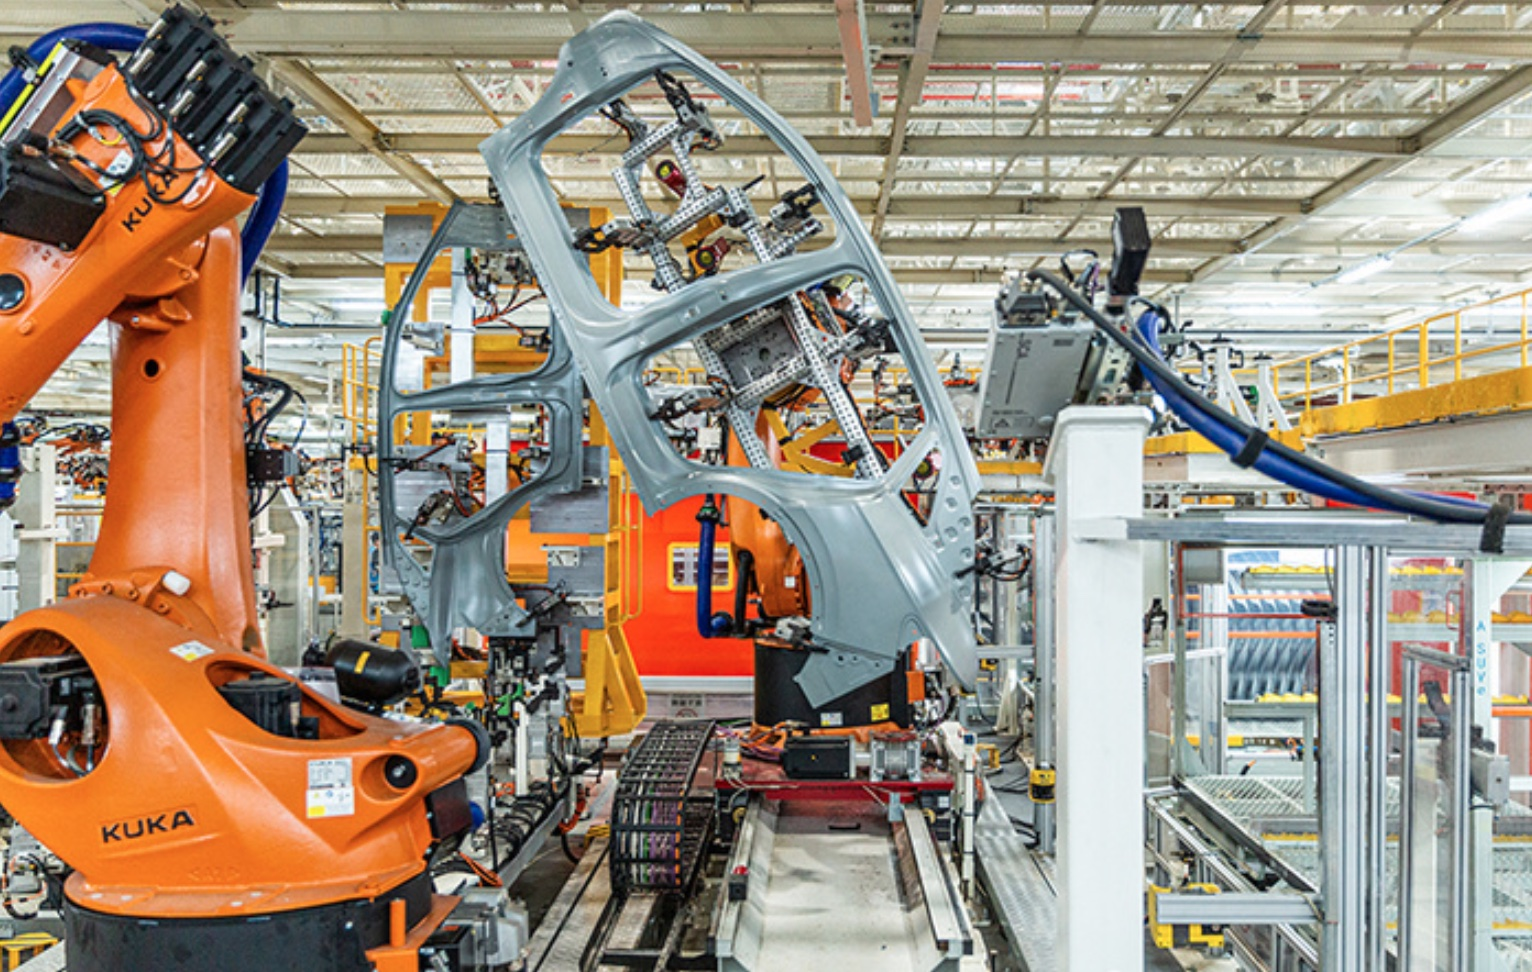 SAIC-Volkswagen's new energy vehicle plant to start production in October with annual capacity of 300,000 vehicles-cnTechPost